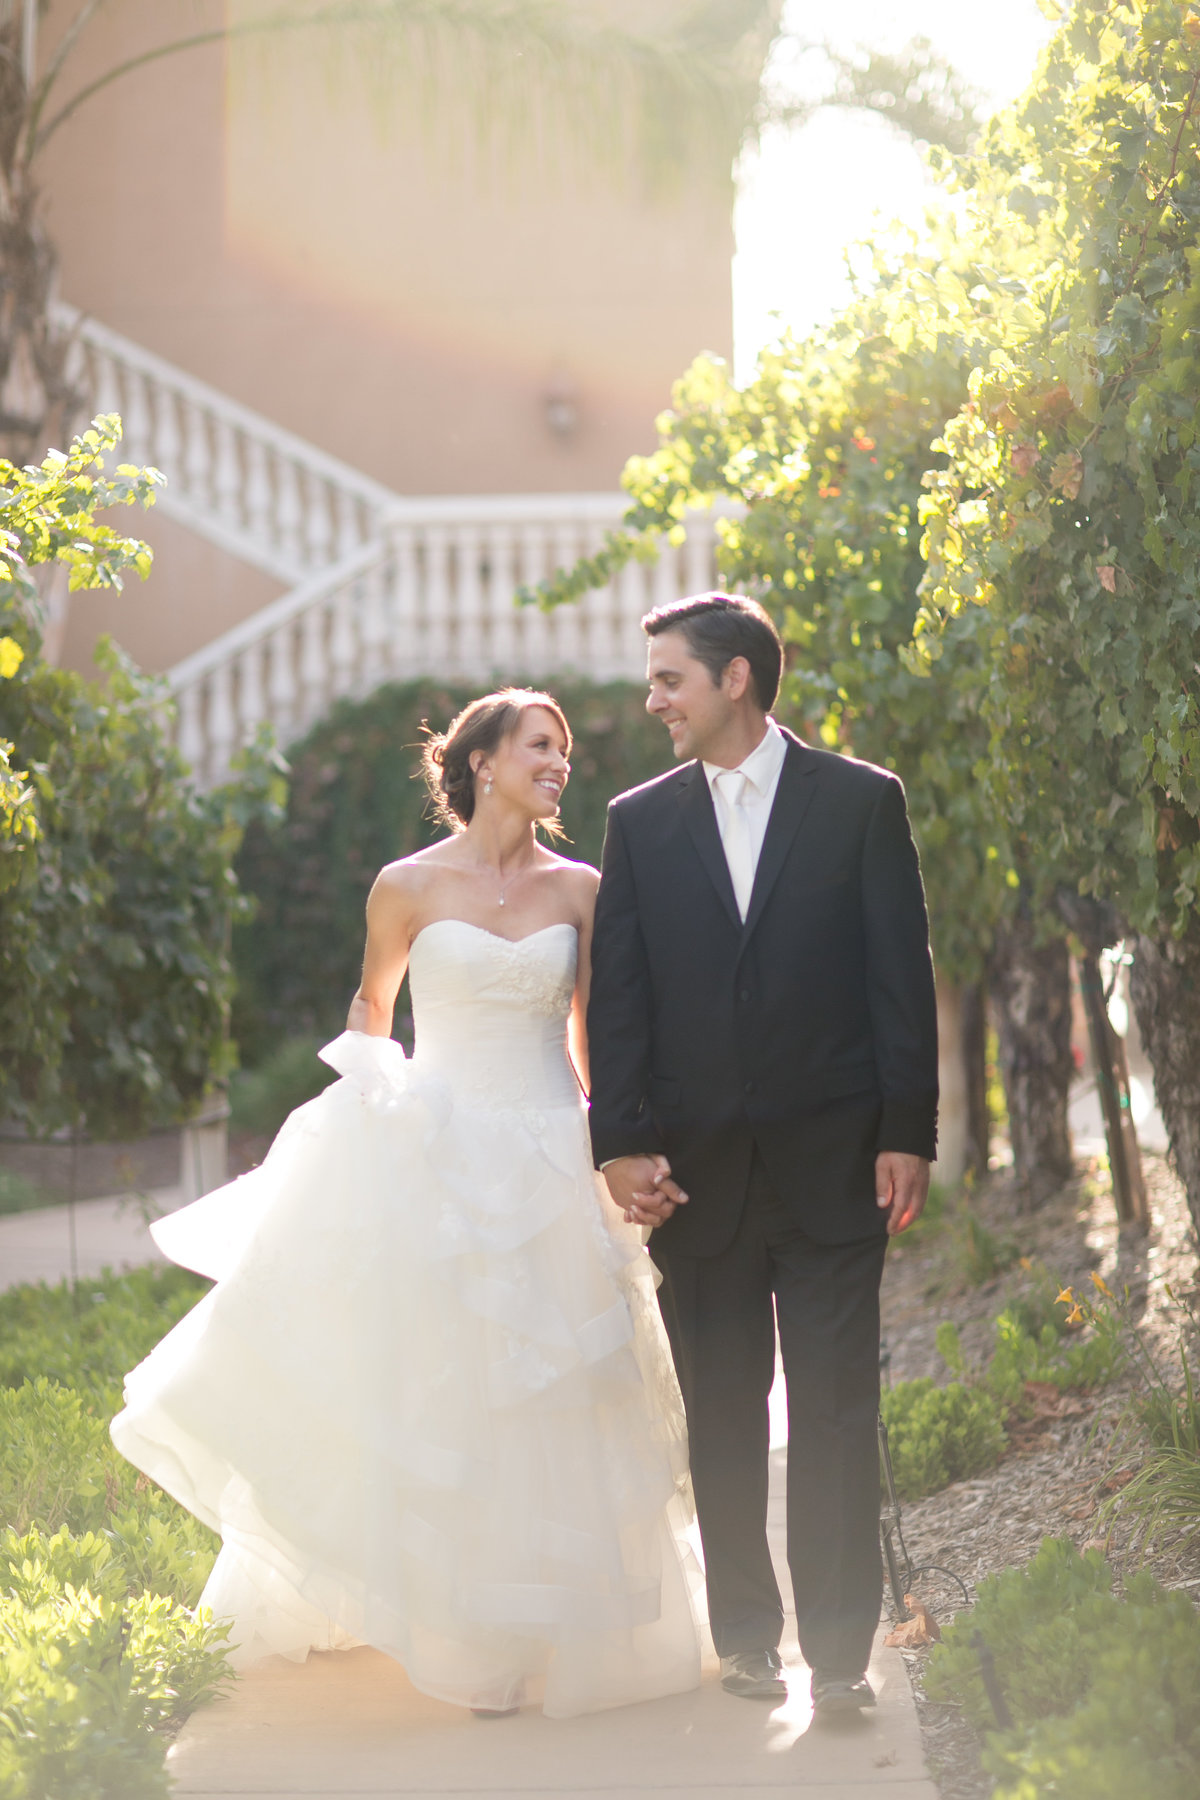 Bride and groom walking through a vineyard in Temecula California